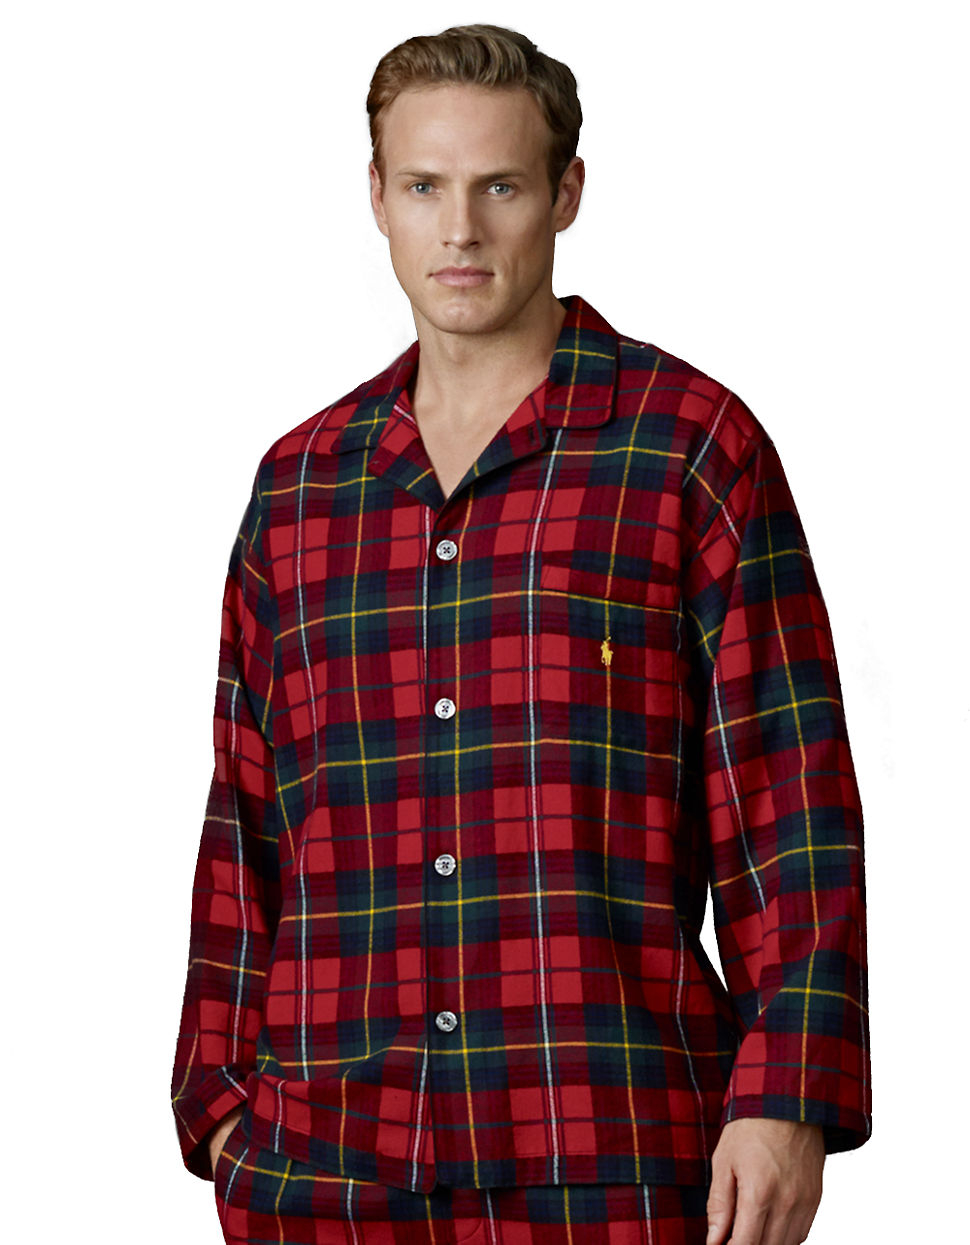 Find great deals on Mens Flannel Sleepwear at Kohl's today! Sponsored Links Outside companies pay to advertise via these links when specific phrases and words are searched.